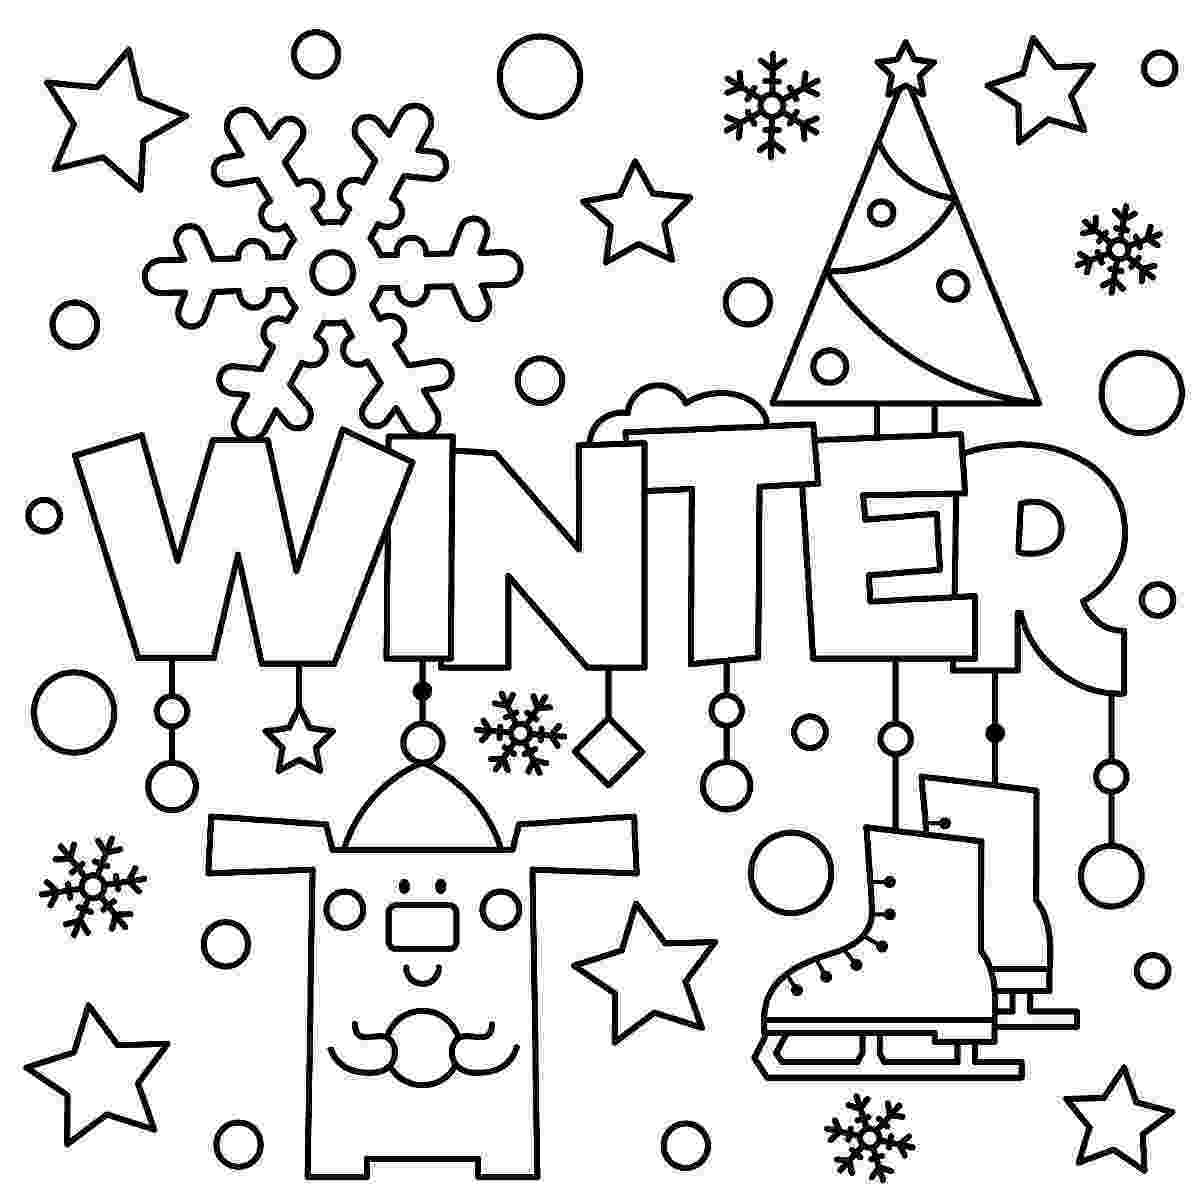 winter coloring sheets free printable winter coloring pages winter coloring sheets